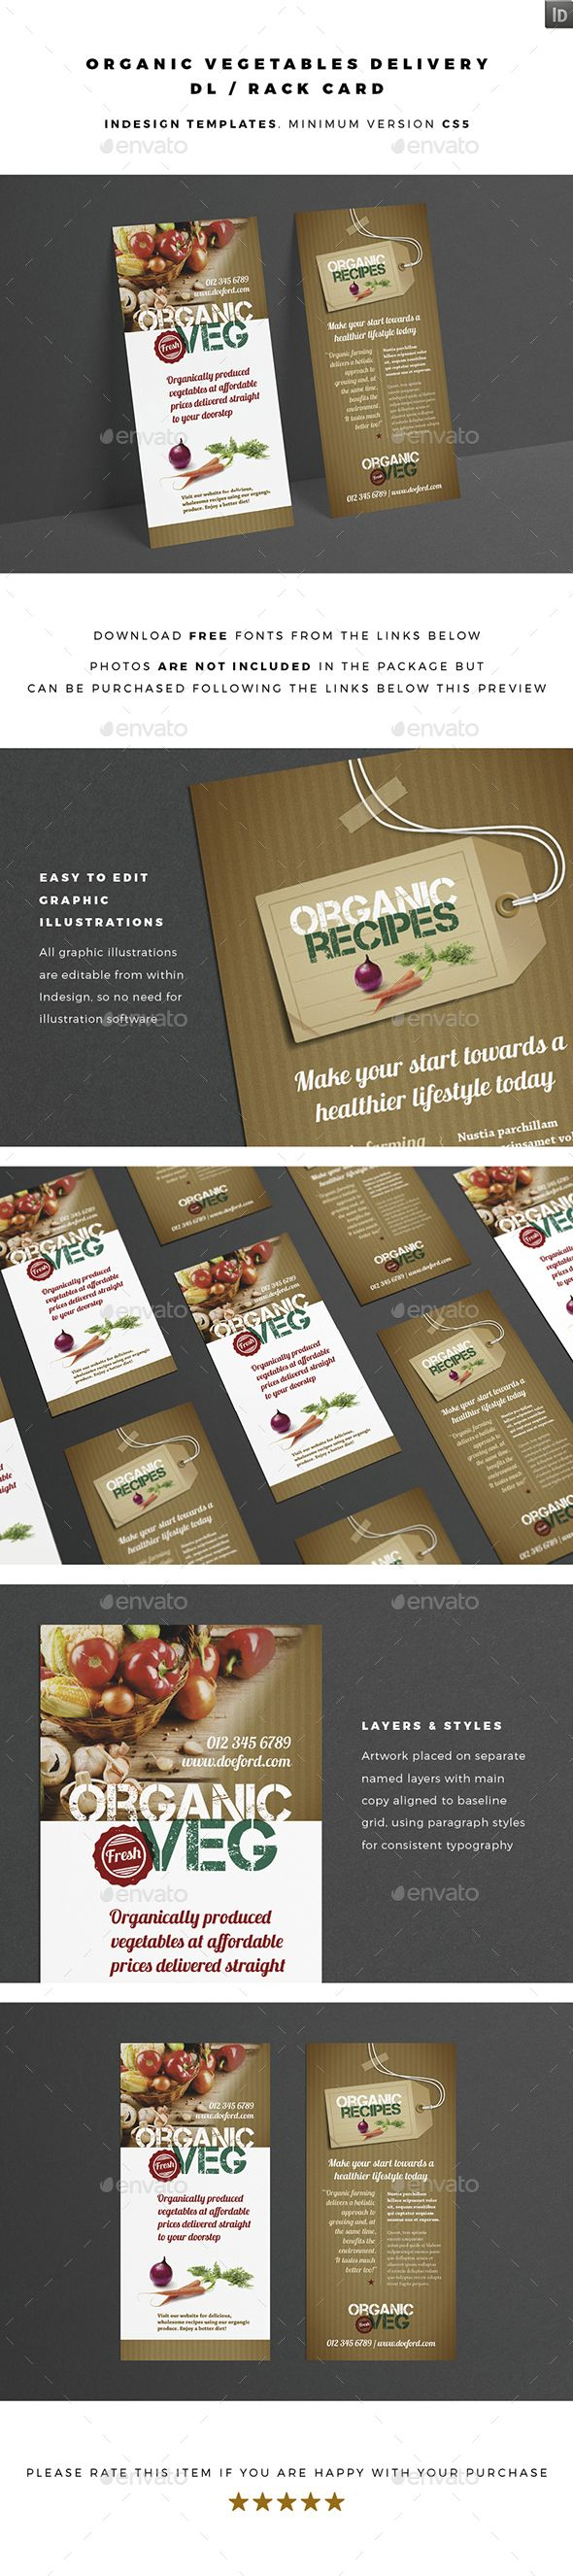 DL / Rack Card - Organic Vegetables Delivery